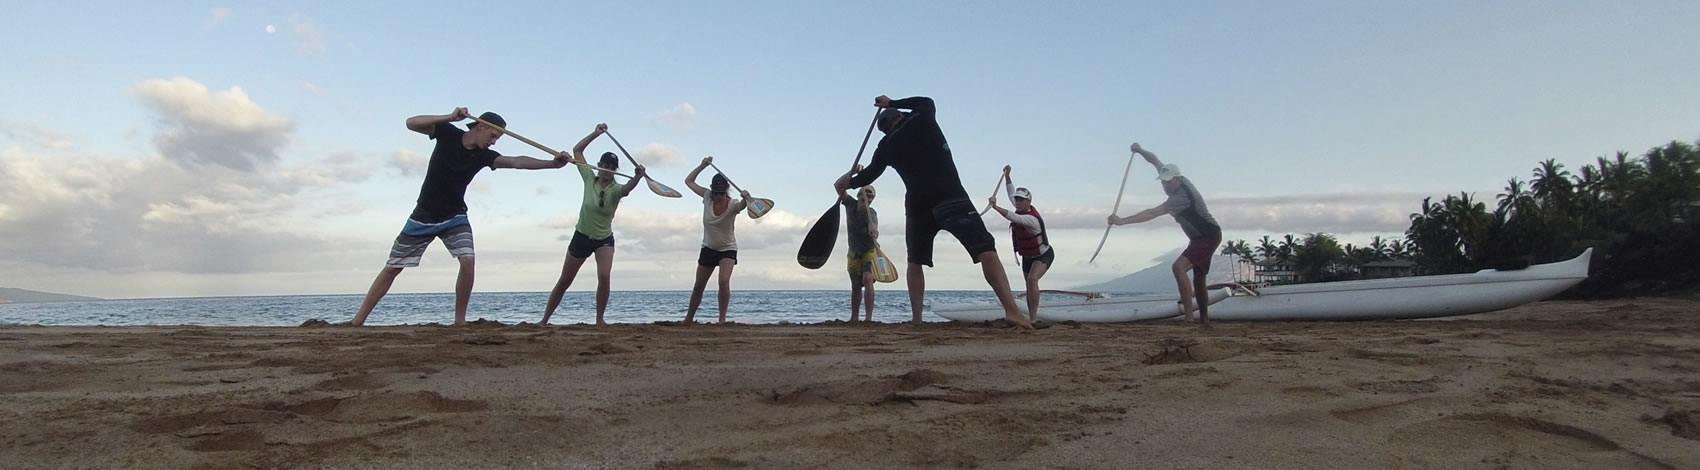 Outrigger Canoe Lesson On The Beach